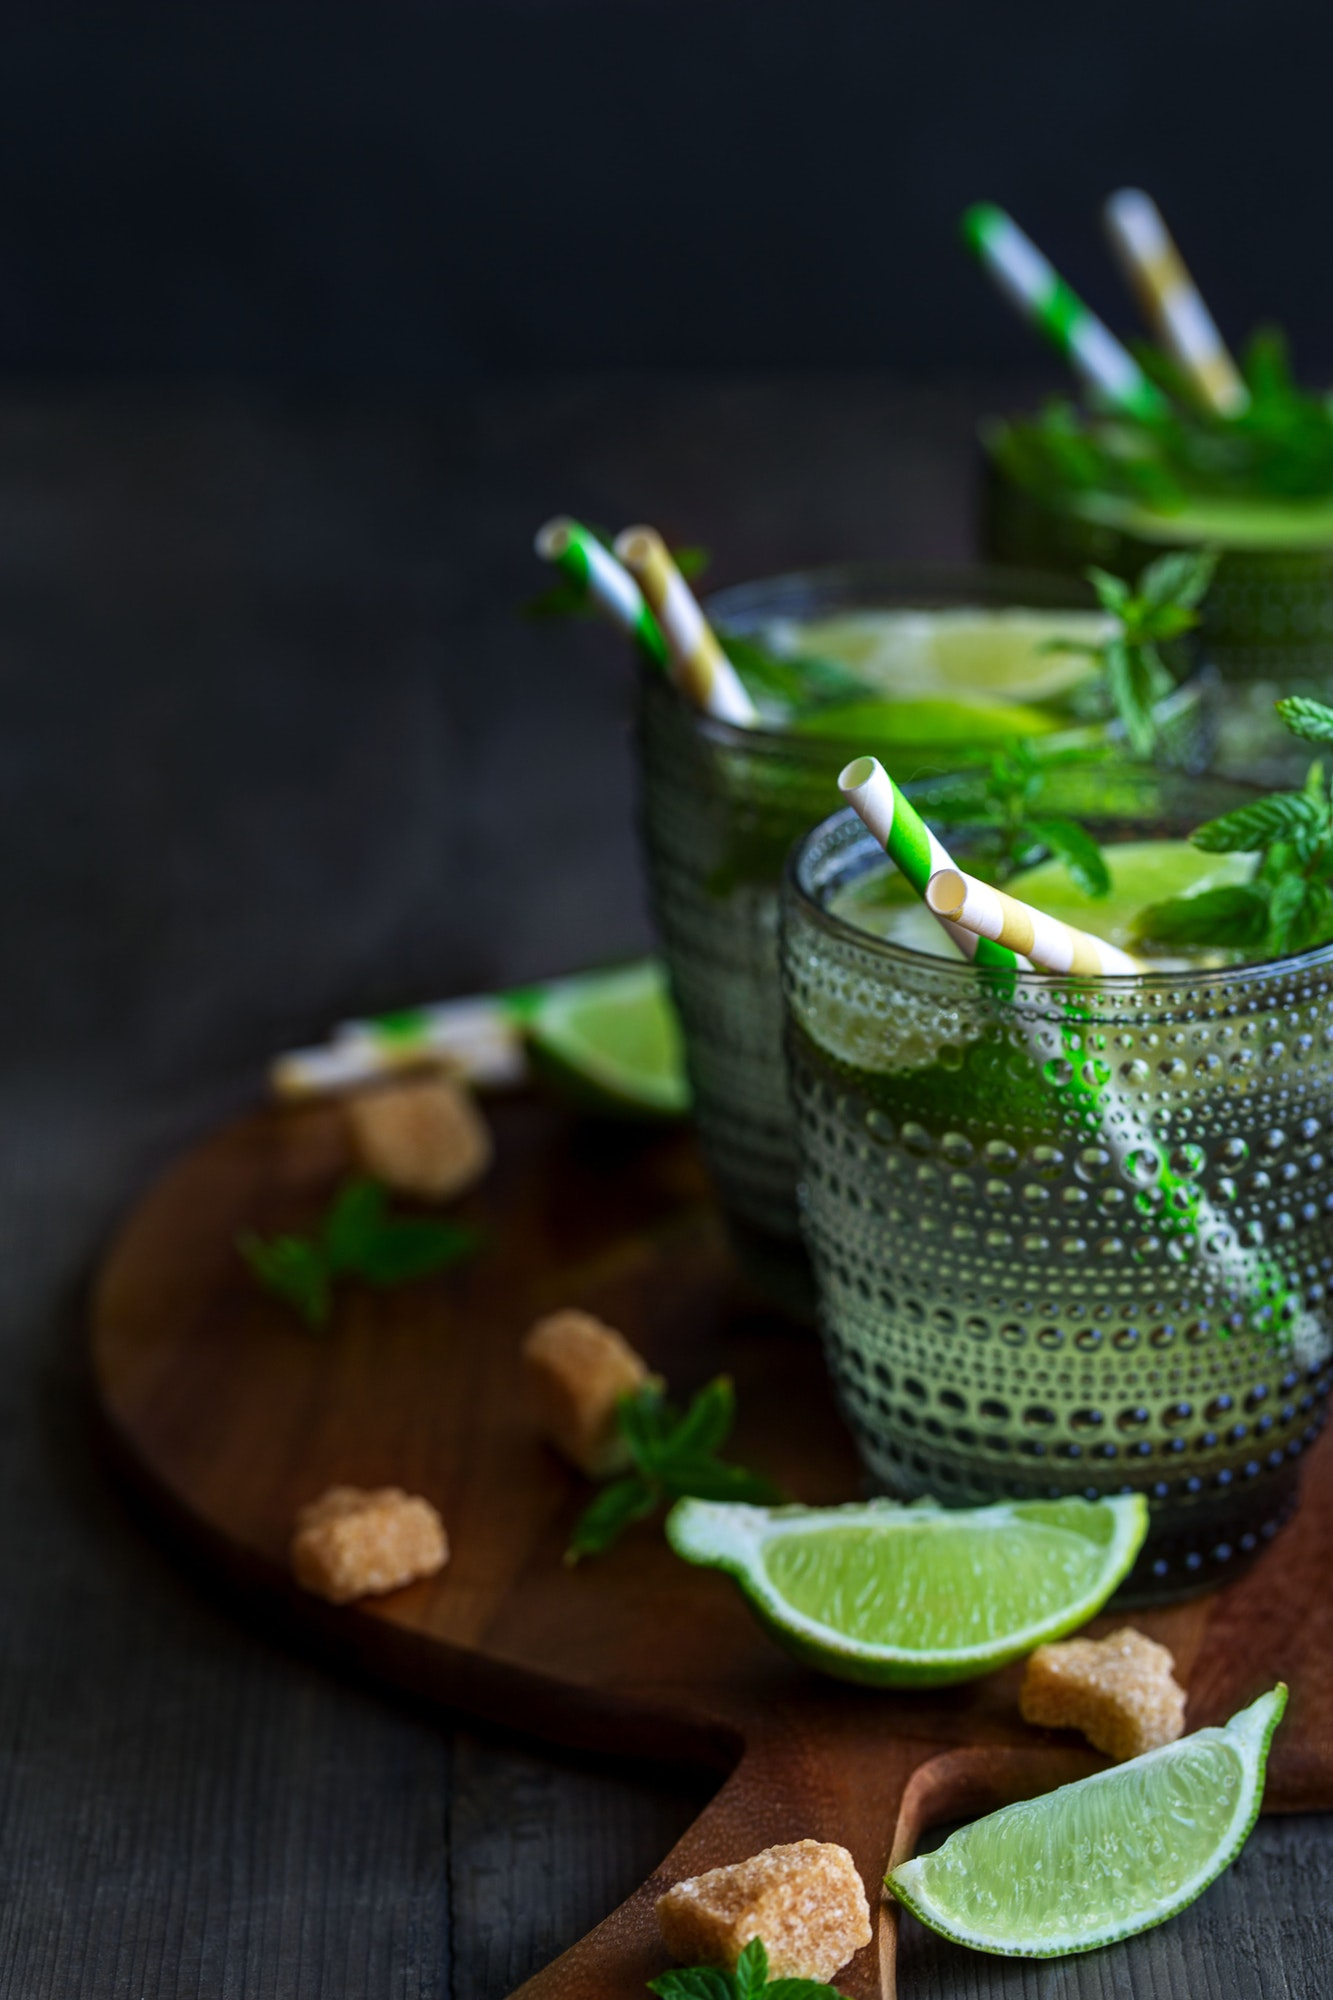 Mojito cocktail background